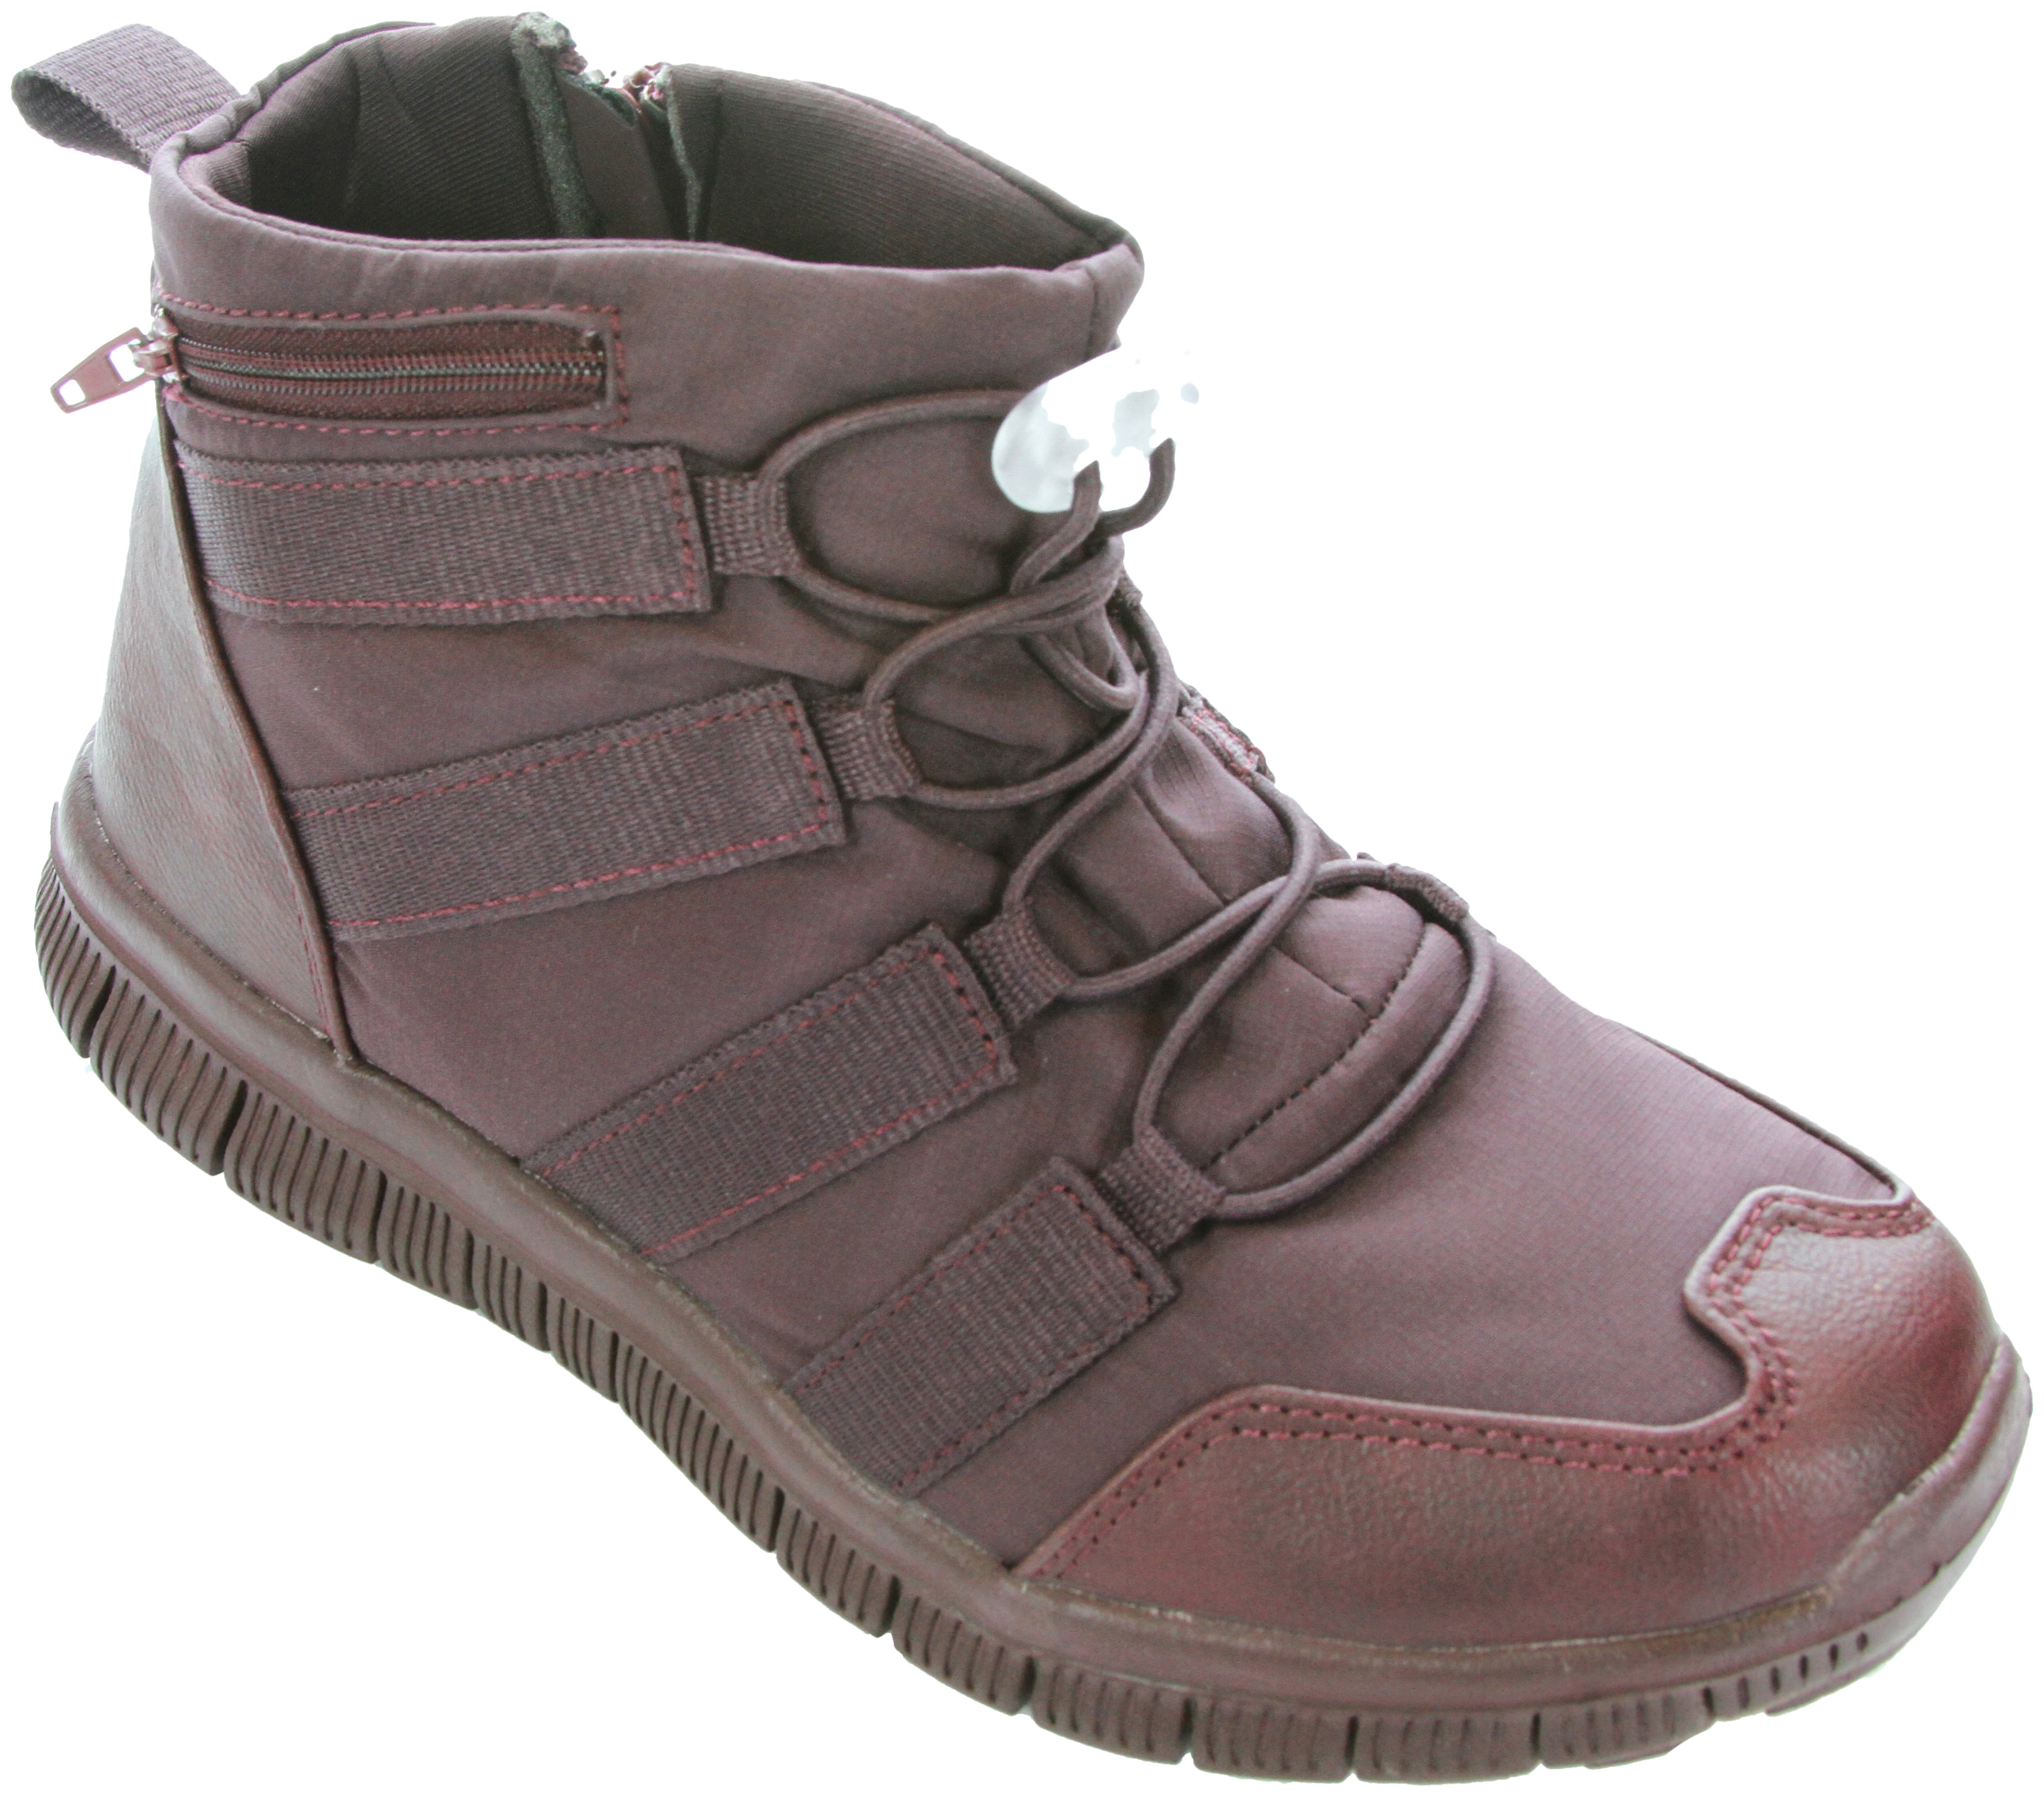 Athletic Shoes Tony Little Cheeks Fit Body Ankle Sneaker Boot Gray Us 9.5 Women's Shoes